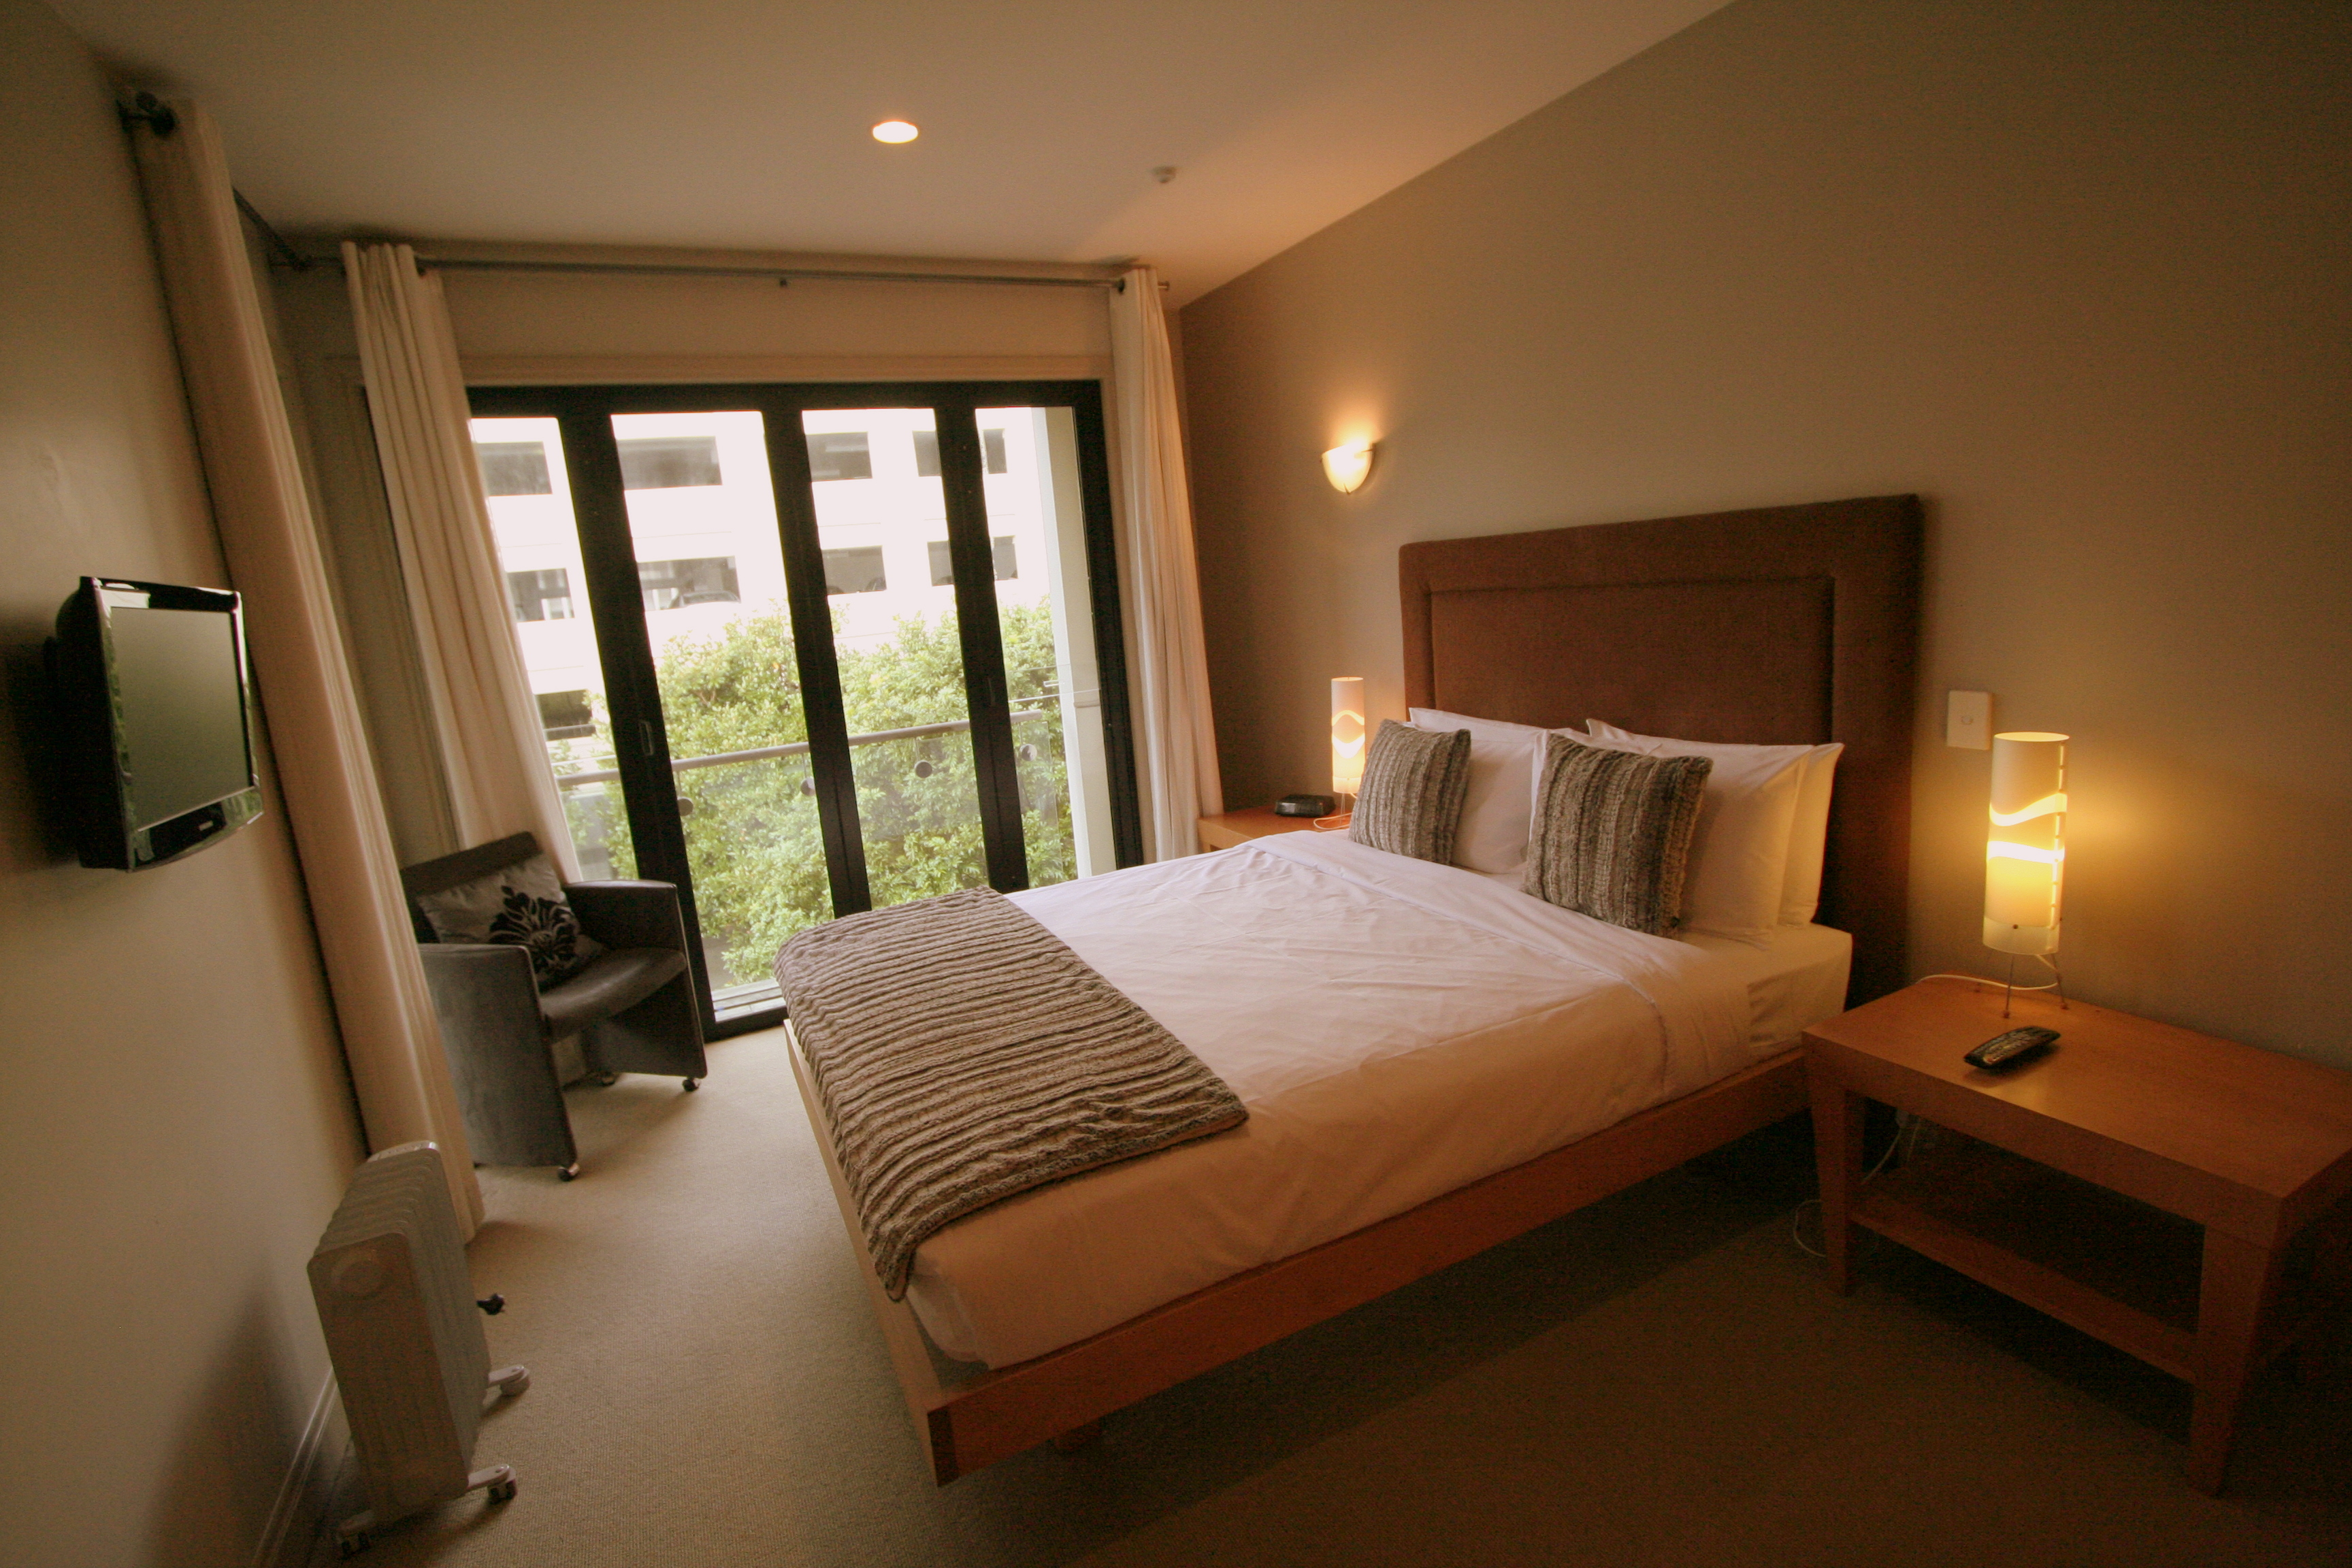 3 bedroom 1 bathroom loft viaduct apartment special latitude 37 serviced apartments Master bedroom with loft area